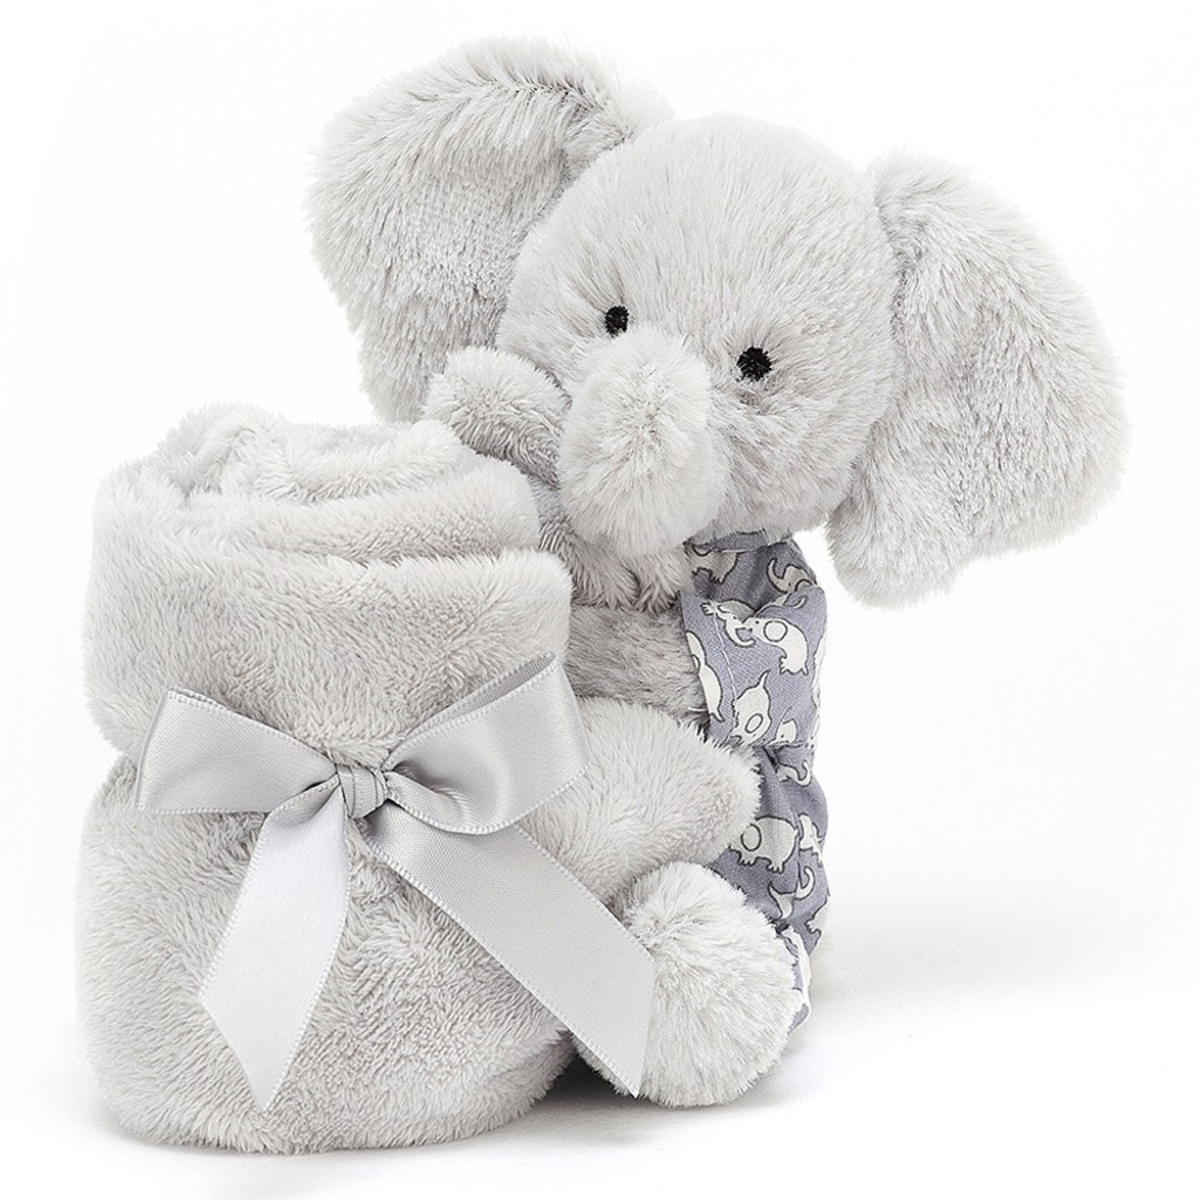 Doudou Bedtime Elephant Soother